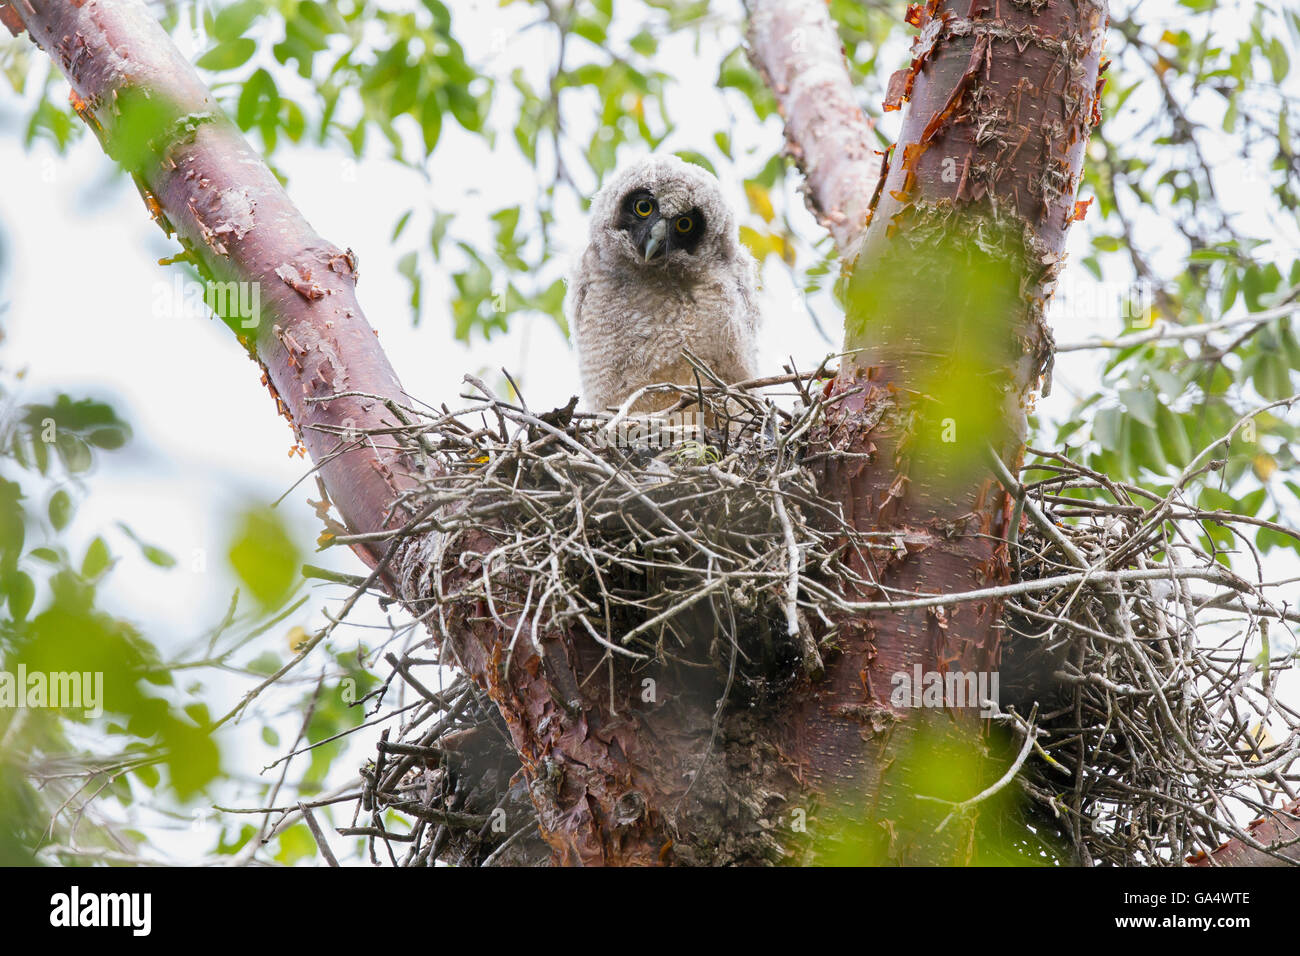 Stygian owlet (Asio stygius) high up in a tree in nest at Zapata Peninsula, Matanzas, Cuba - Stock Image